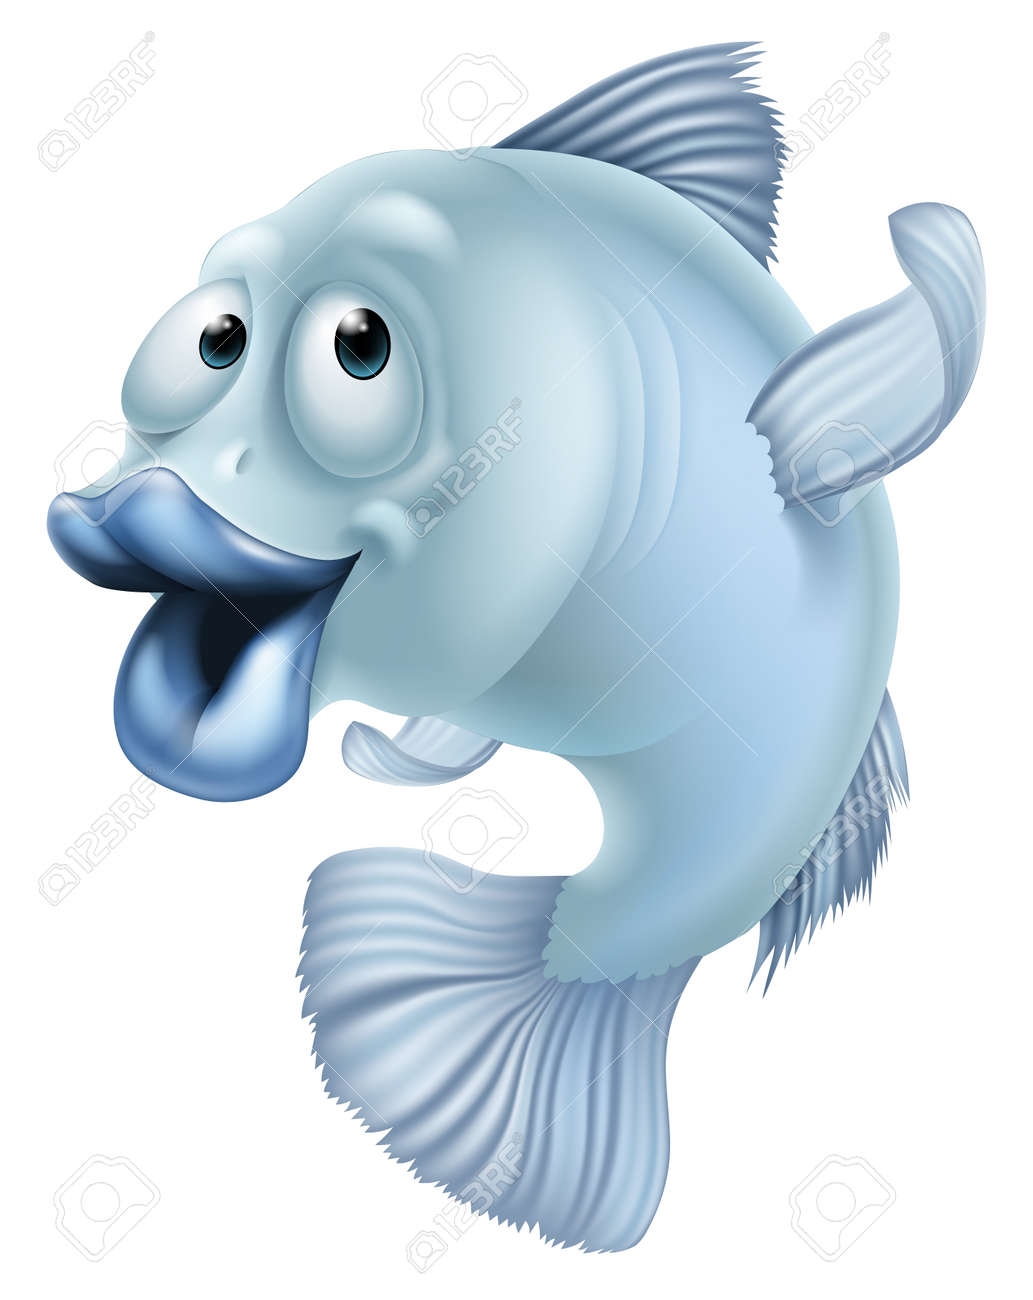 An illustration of a blue cartoon fish character mascot Stock Vector - 27870807